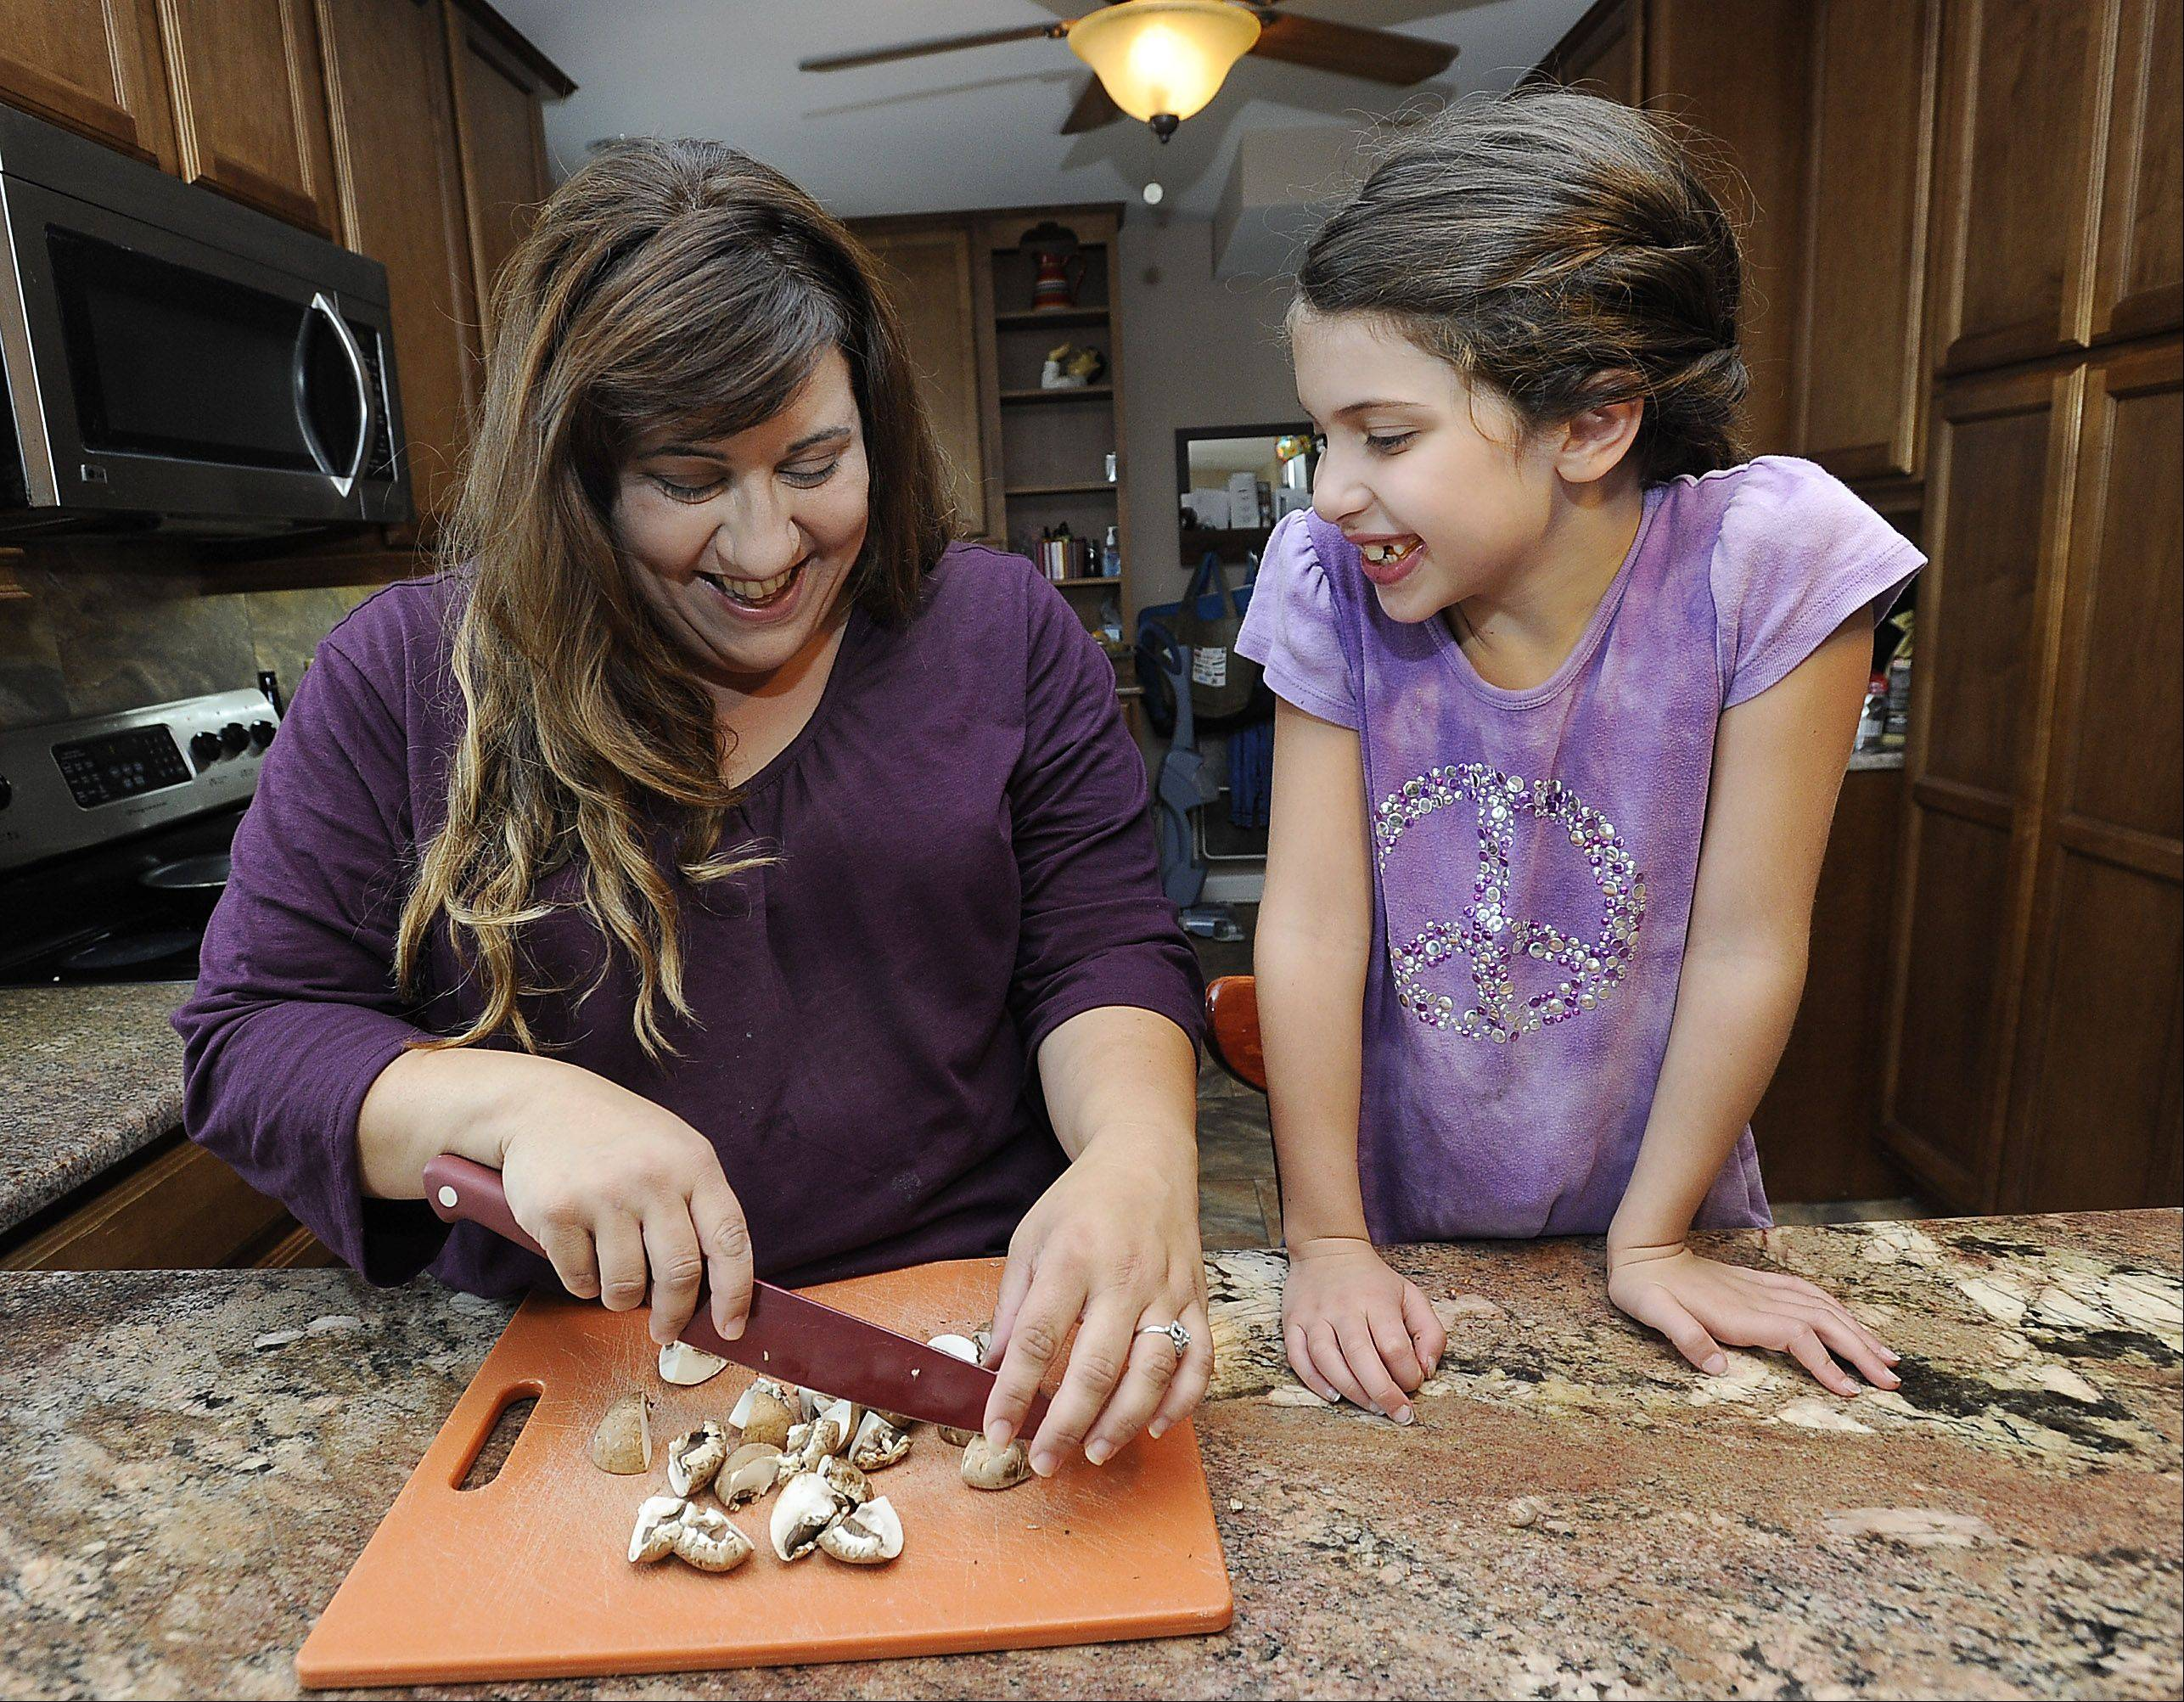 Mark Welsh/mwelsh@dailyherald.comTina Garrett of DesPlaines in her kitchen with her daughter Lillian,7, chopping up mushrooms for her next food dish.